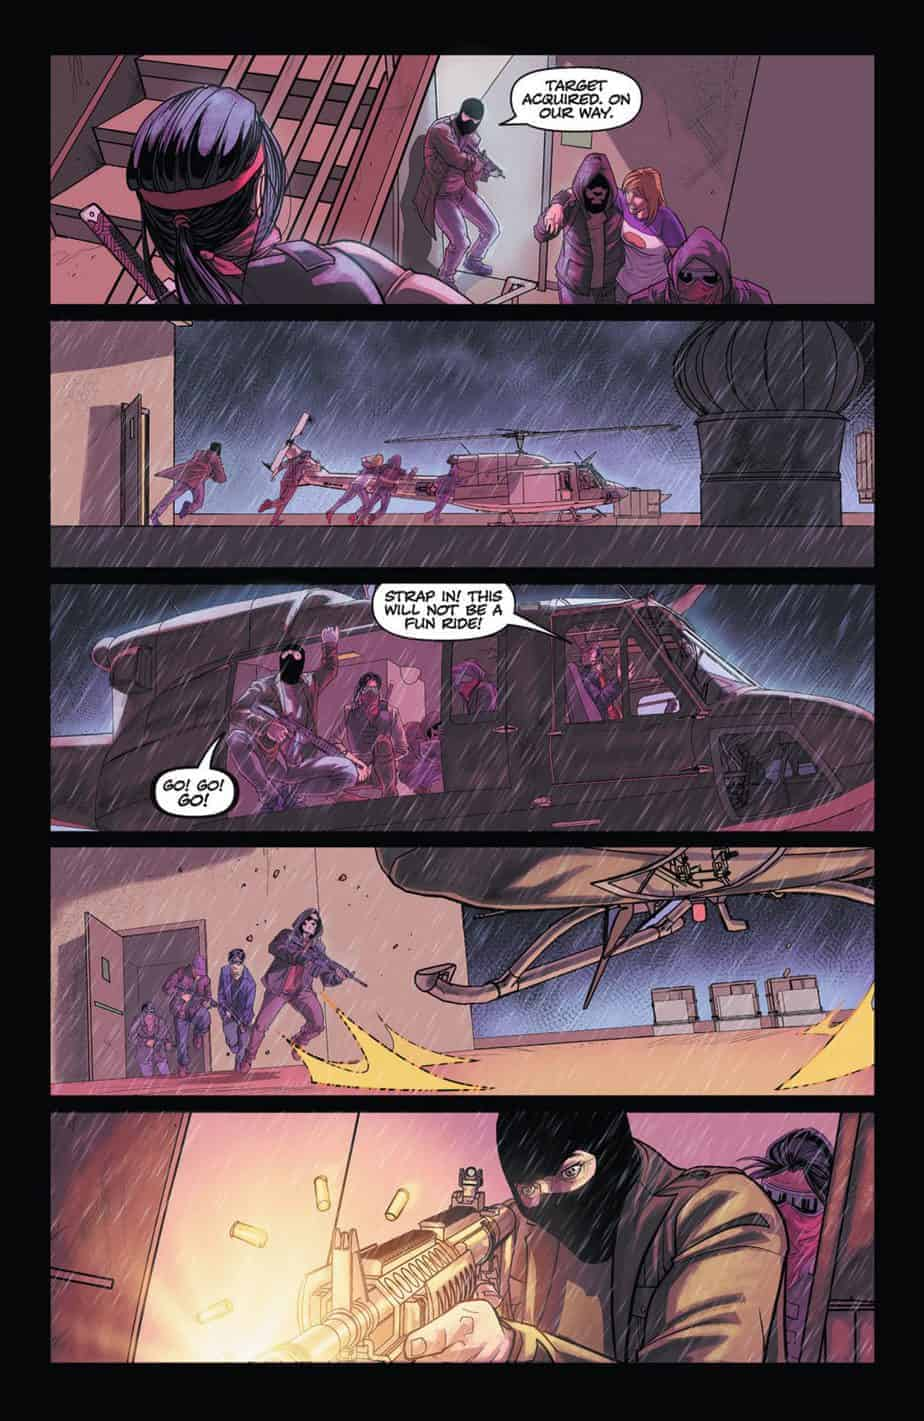 THE FREEZE #1 preview page 3